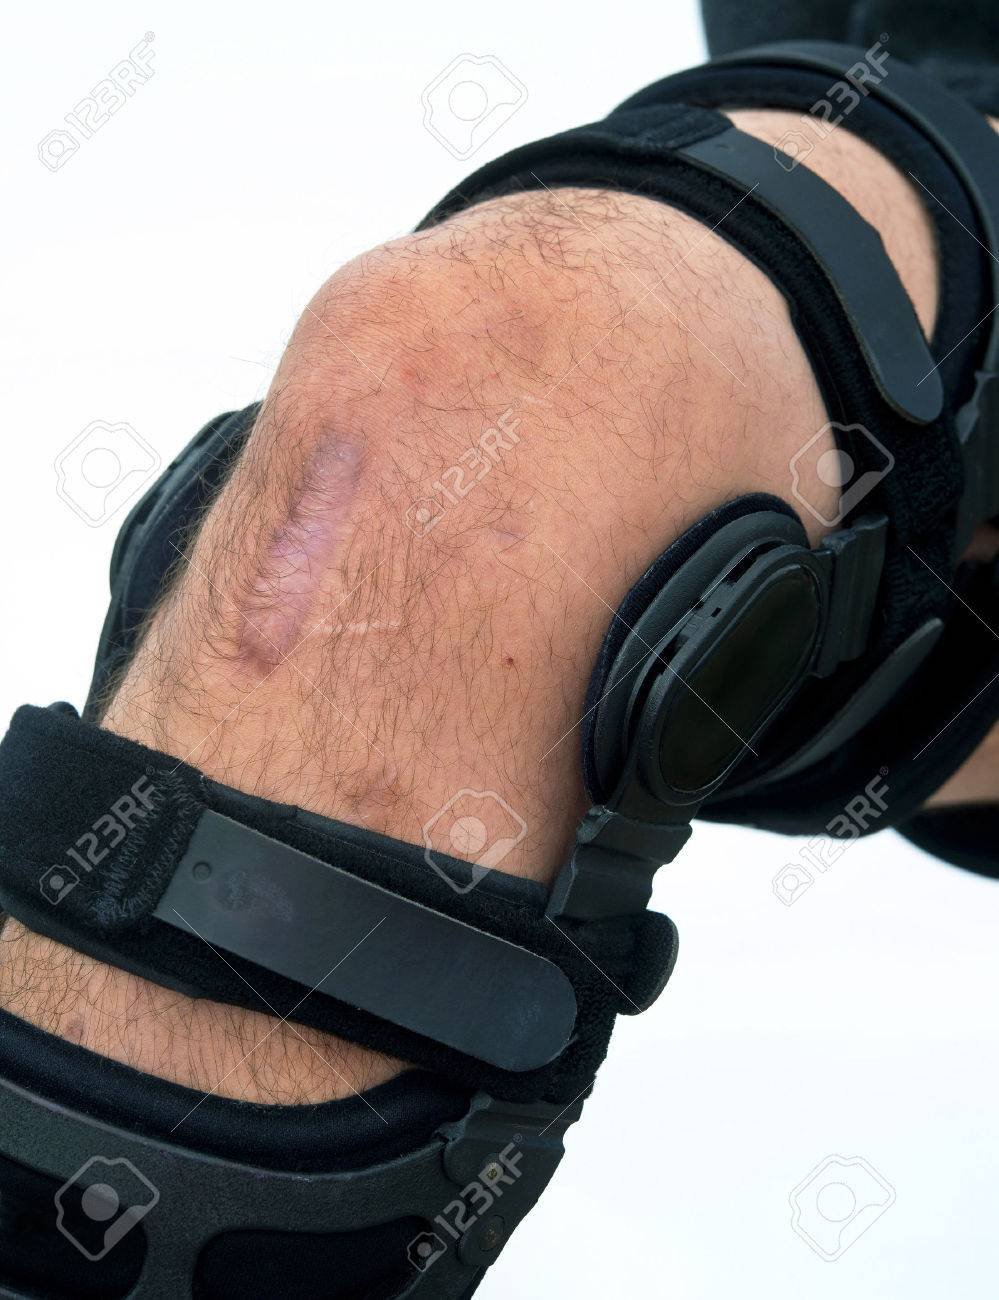 7dd0d531d7 Knee Brace For ACL Football Knee Injury Stock Photo, Picture And ...